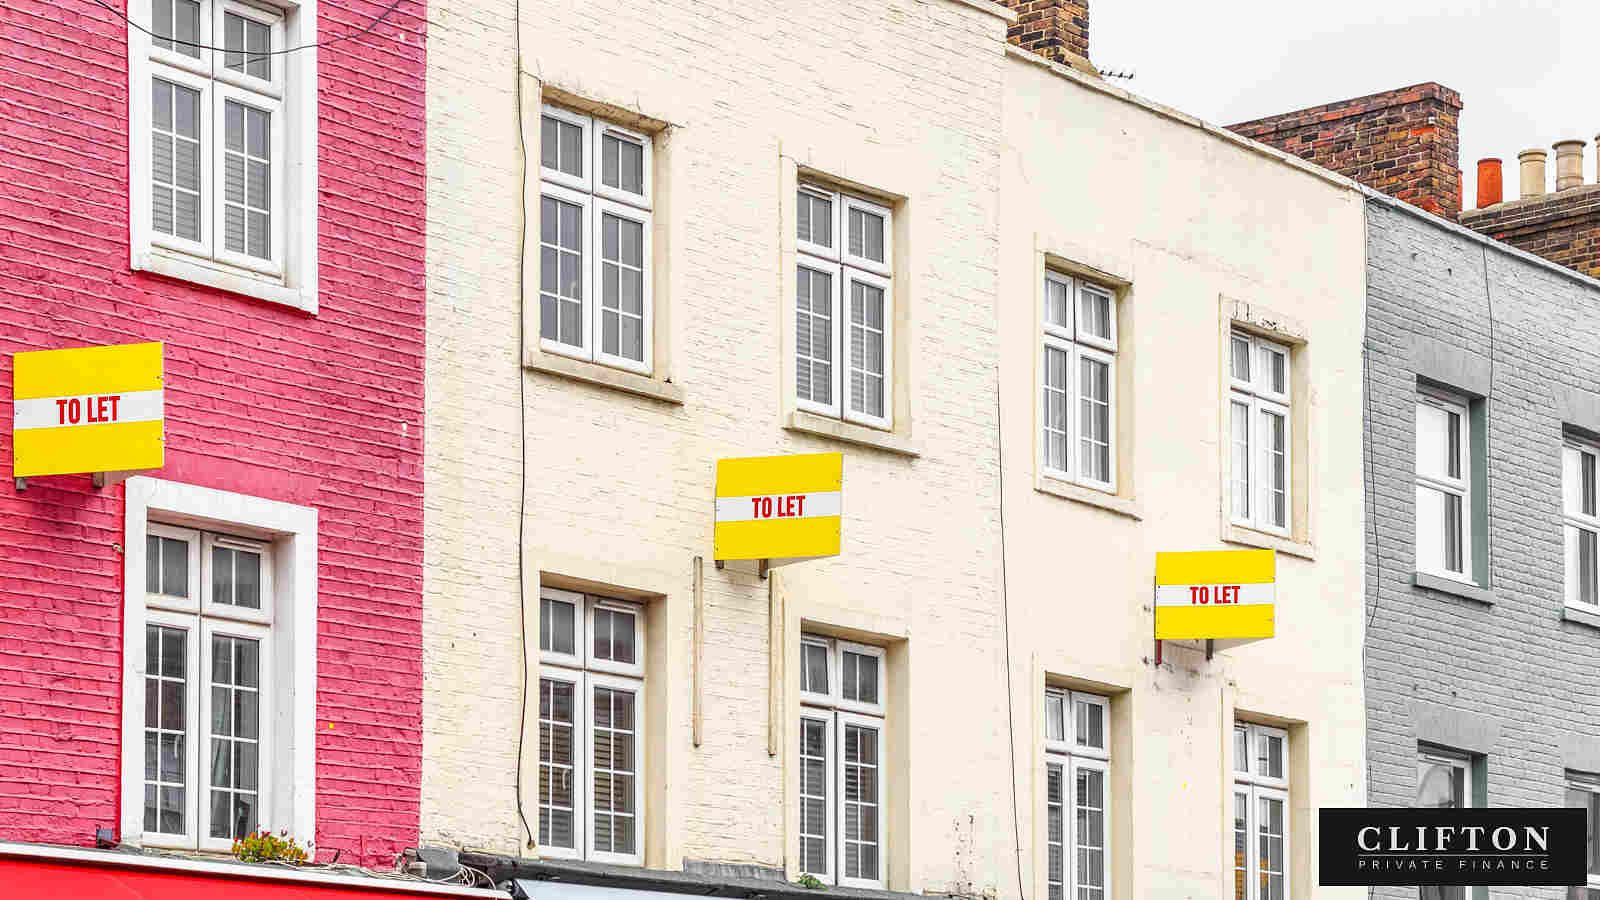 Buy To Let landlord? How to raise finance on multiple properties